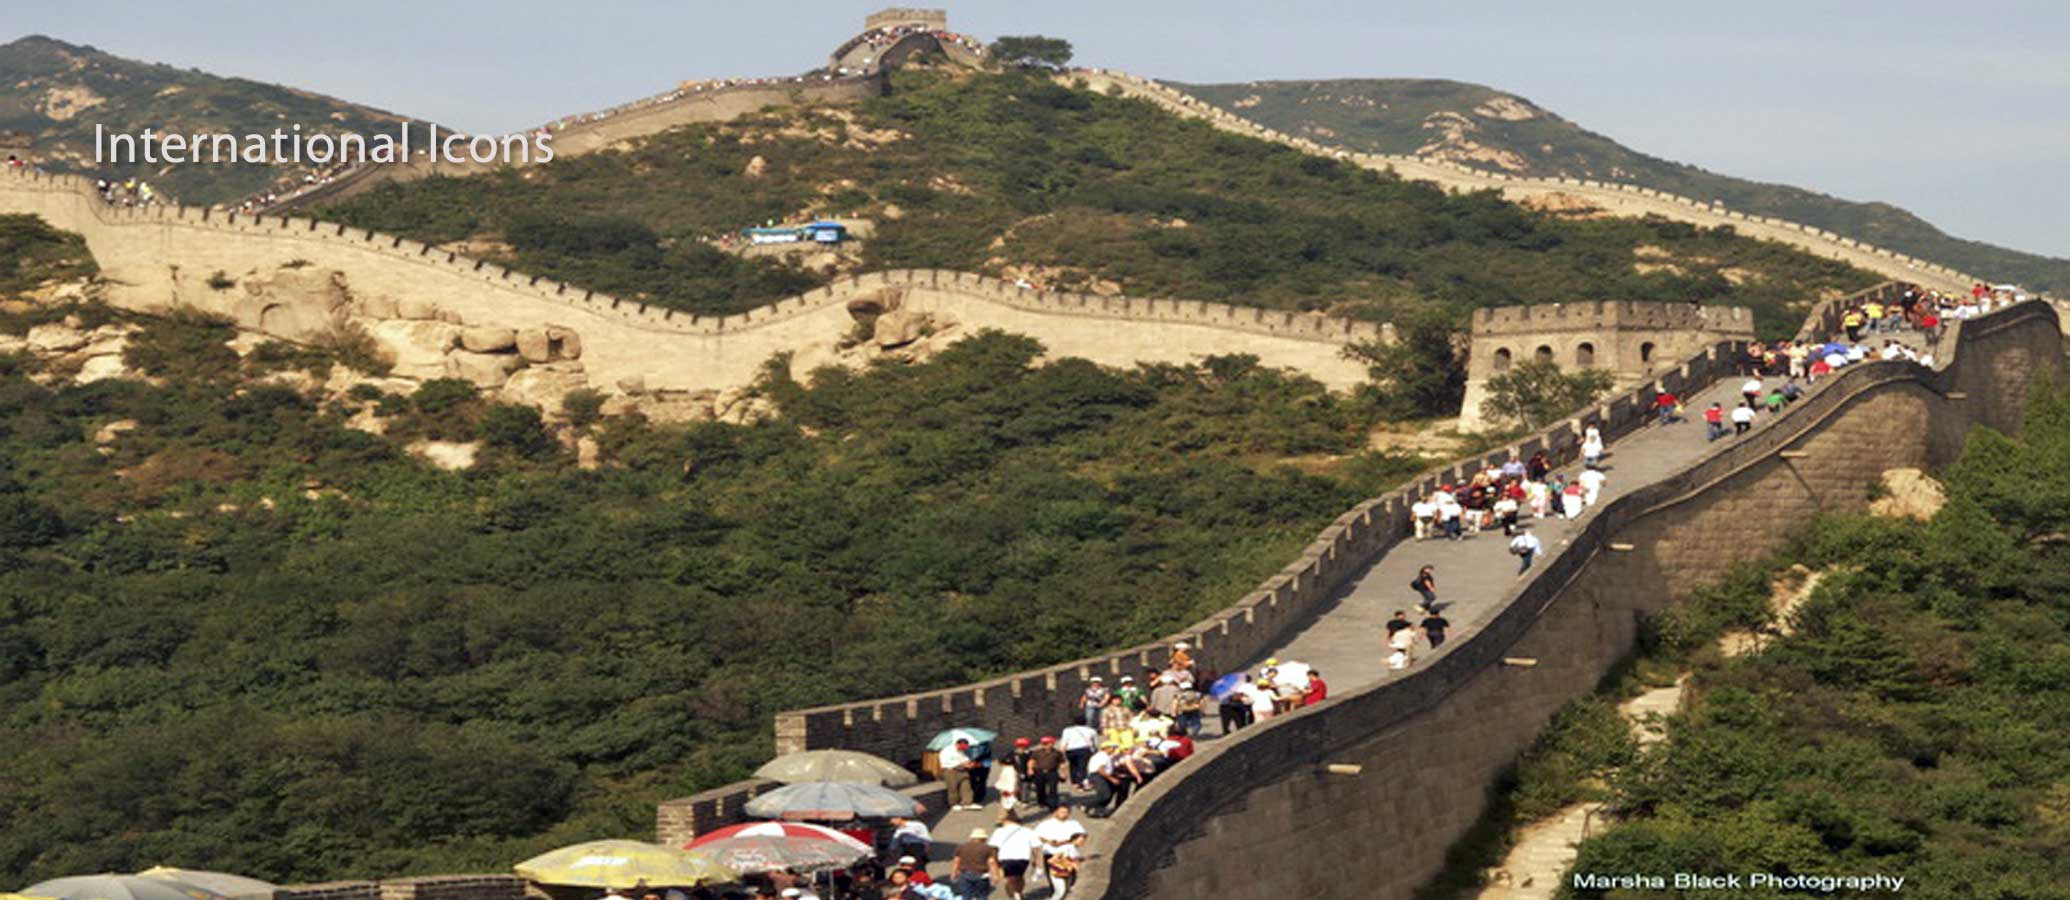 International-Icons-Great-Wall-China-Marsha-J-Black-900